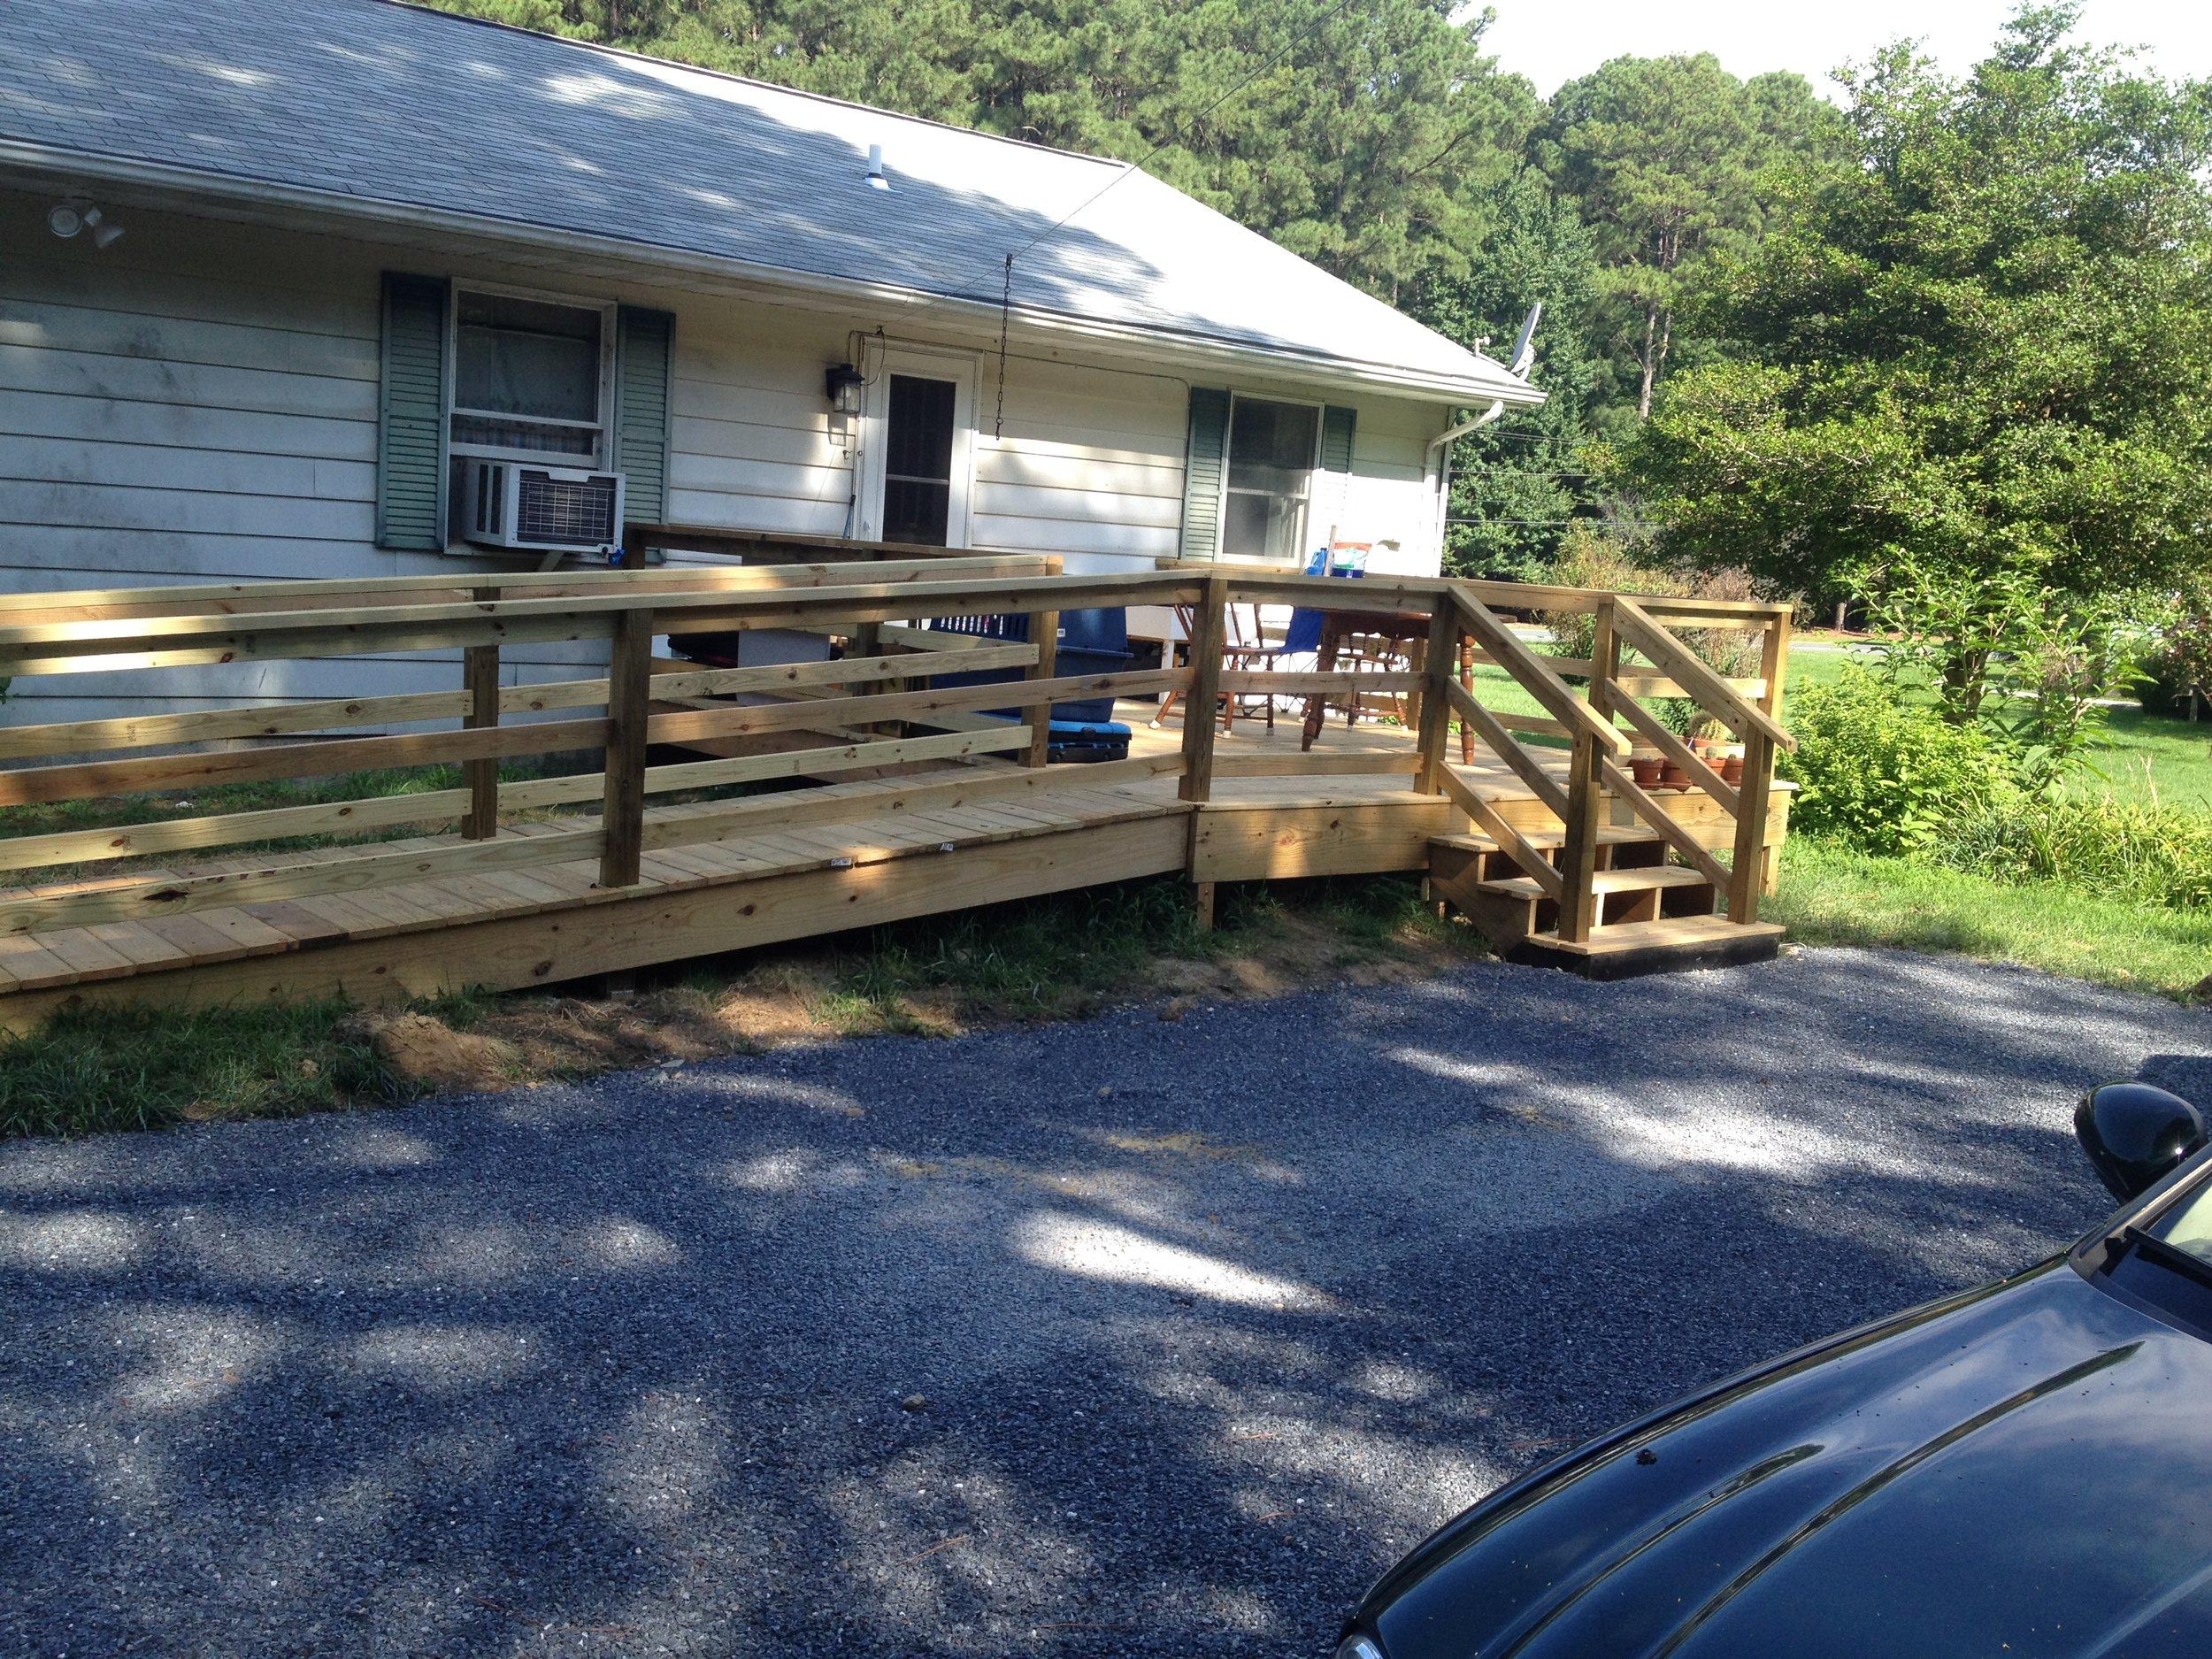 Recently completed deck and ramp.